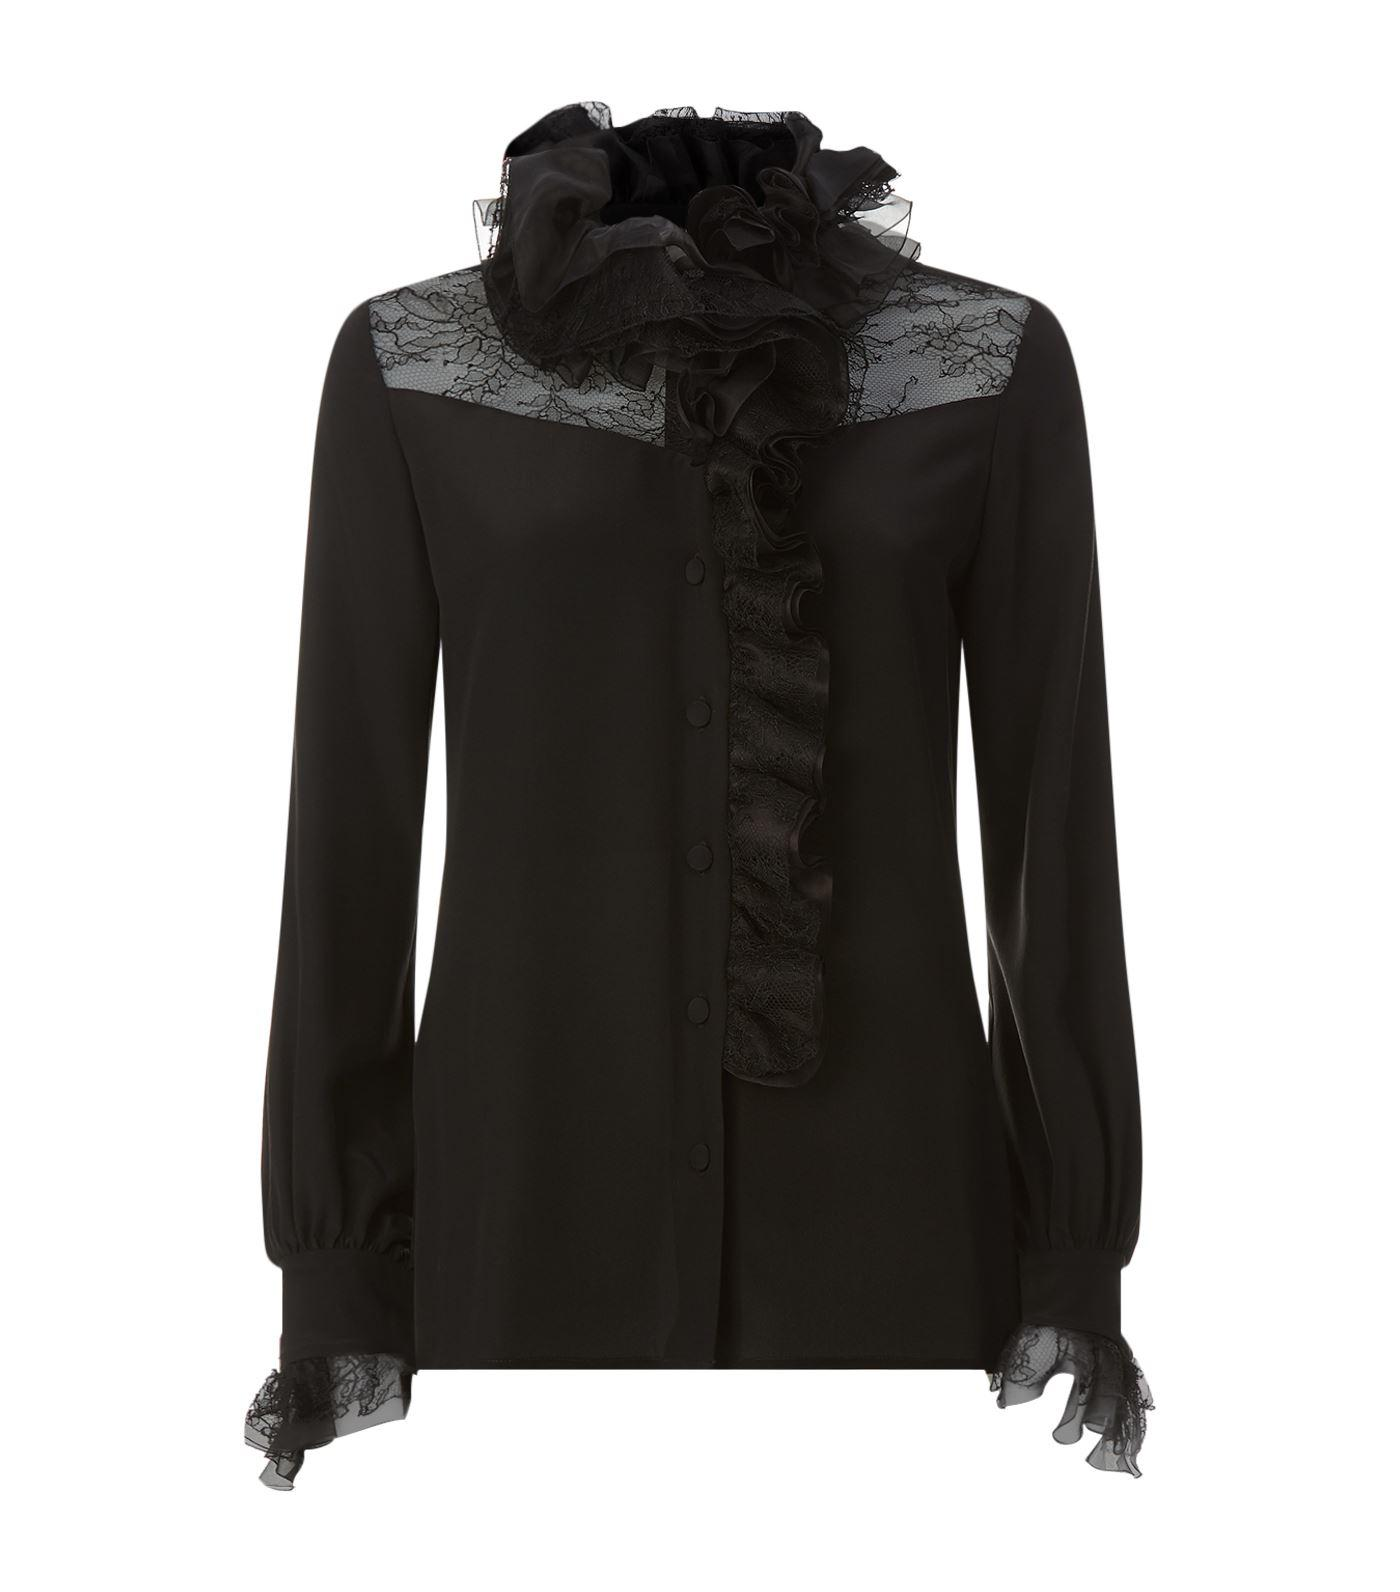 Lanvin Ruffle Lace Top In Black